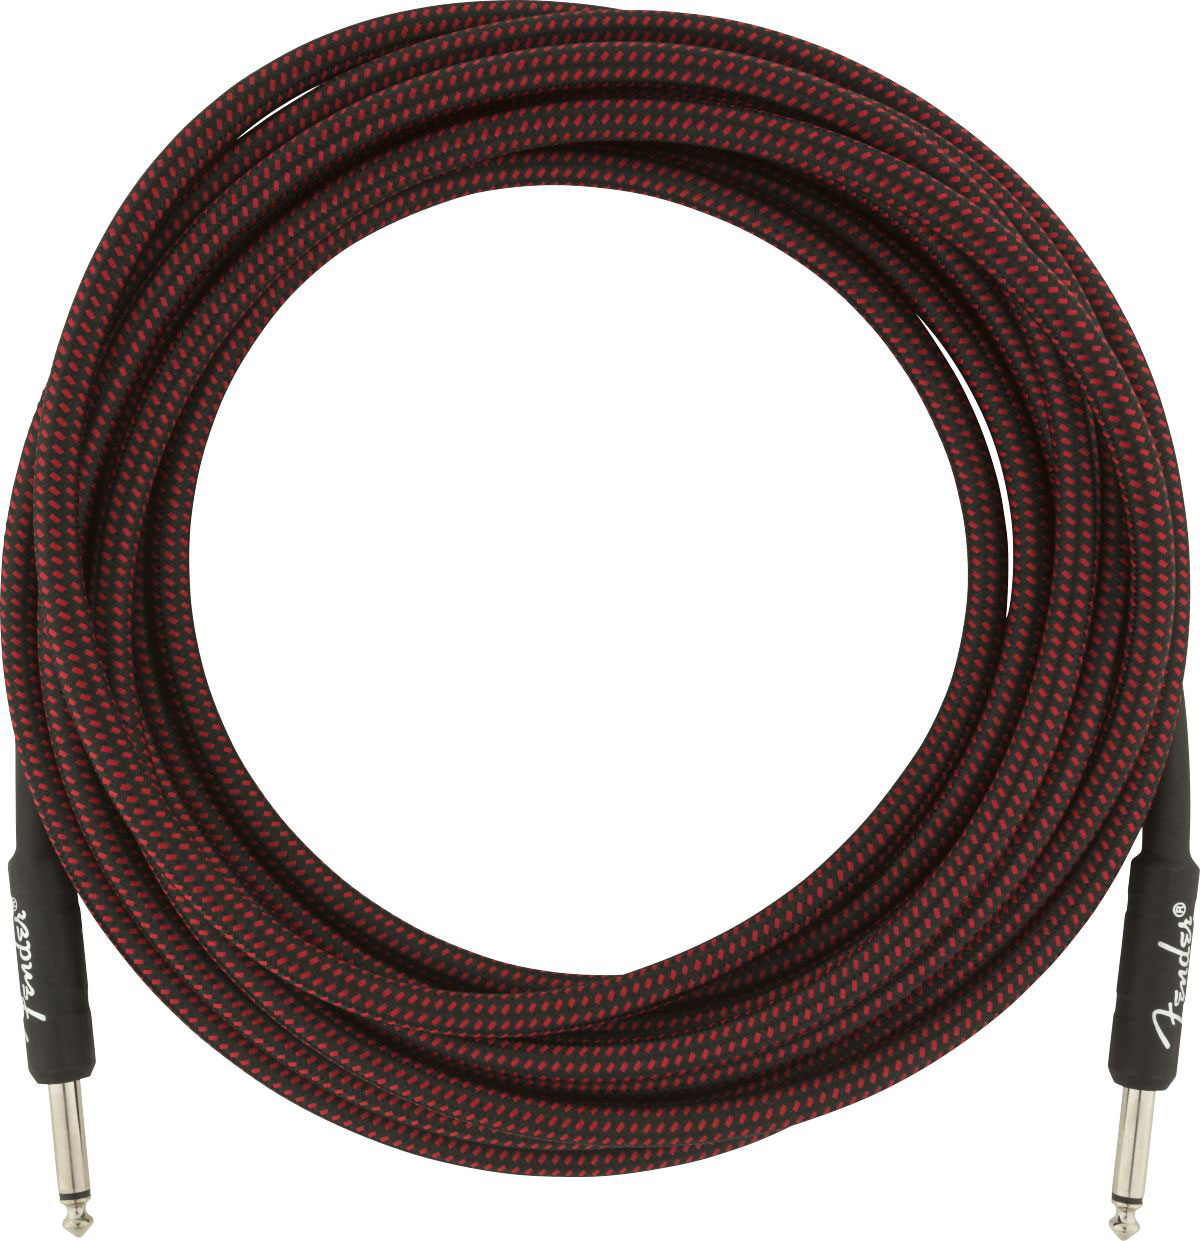 PROFESSIONAL SERIES INSTRUMENT CABLE 18.6' RED TWEED